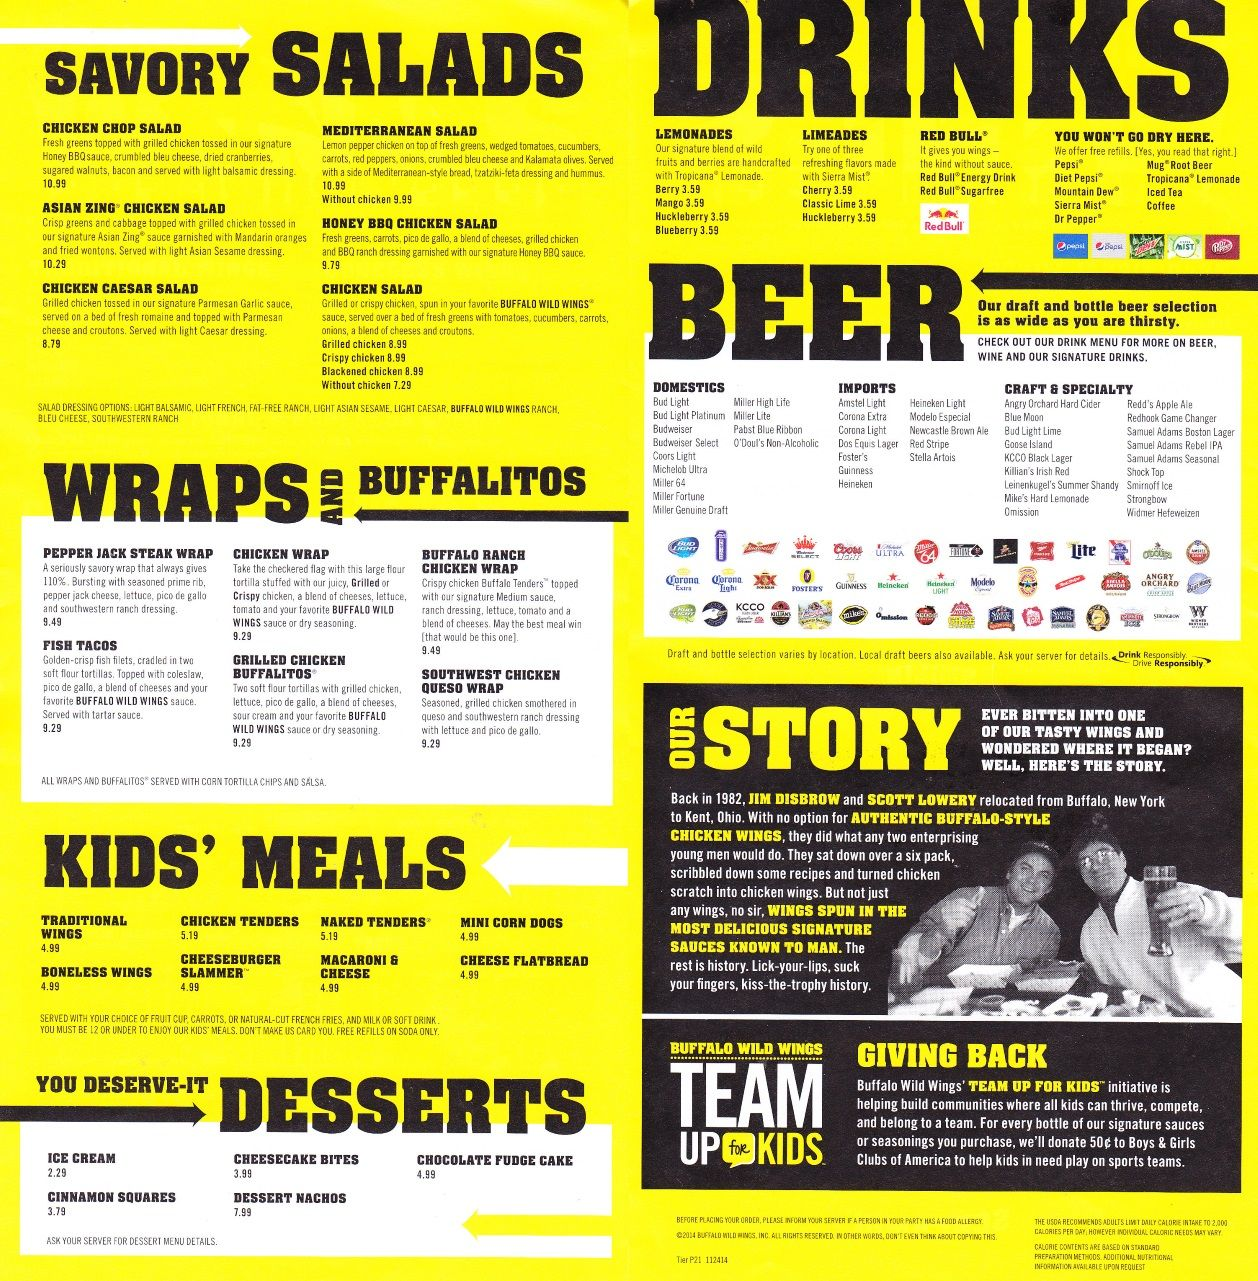 image relating to Buffalo Wild Wings Printable Menu identify Graphic final result for buffalo wild wings Menu Layout Steak